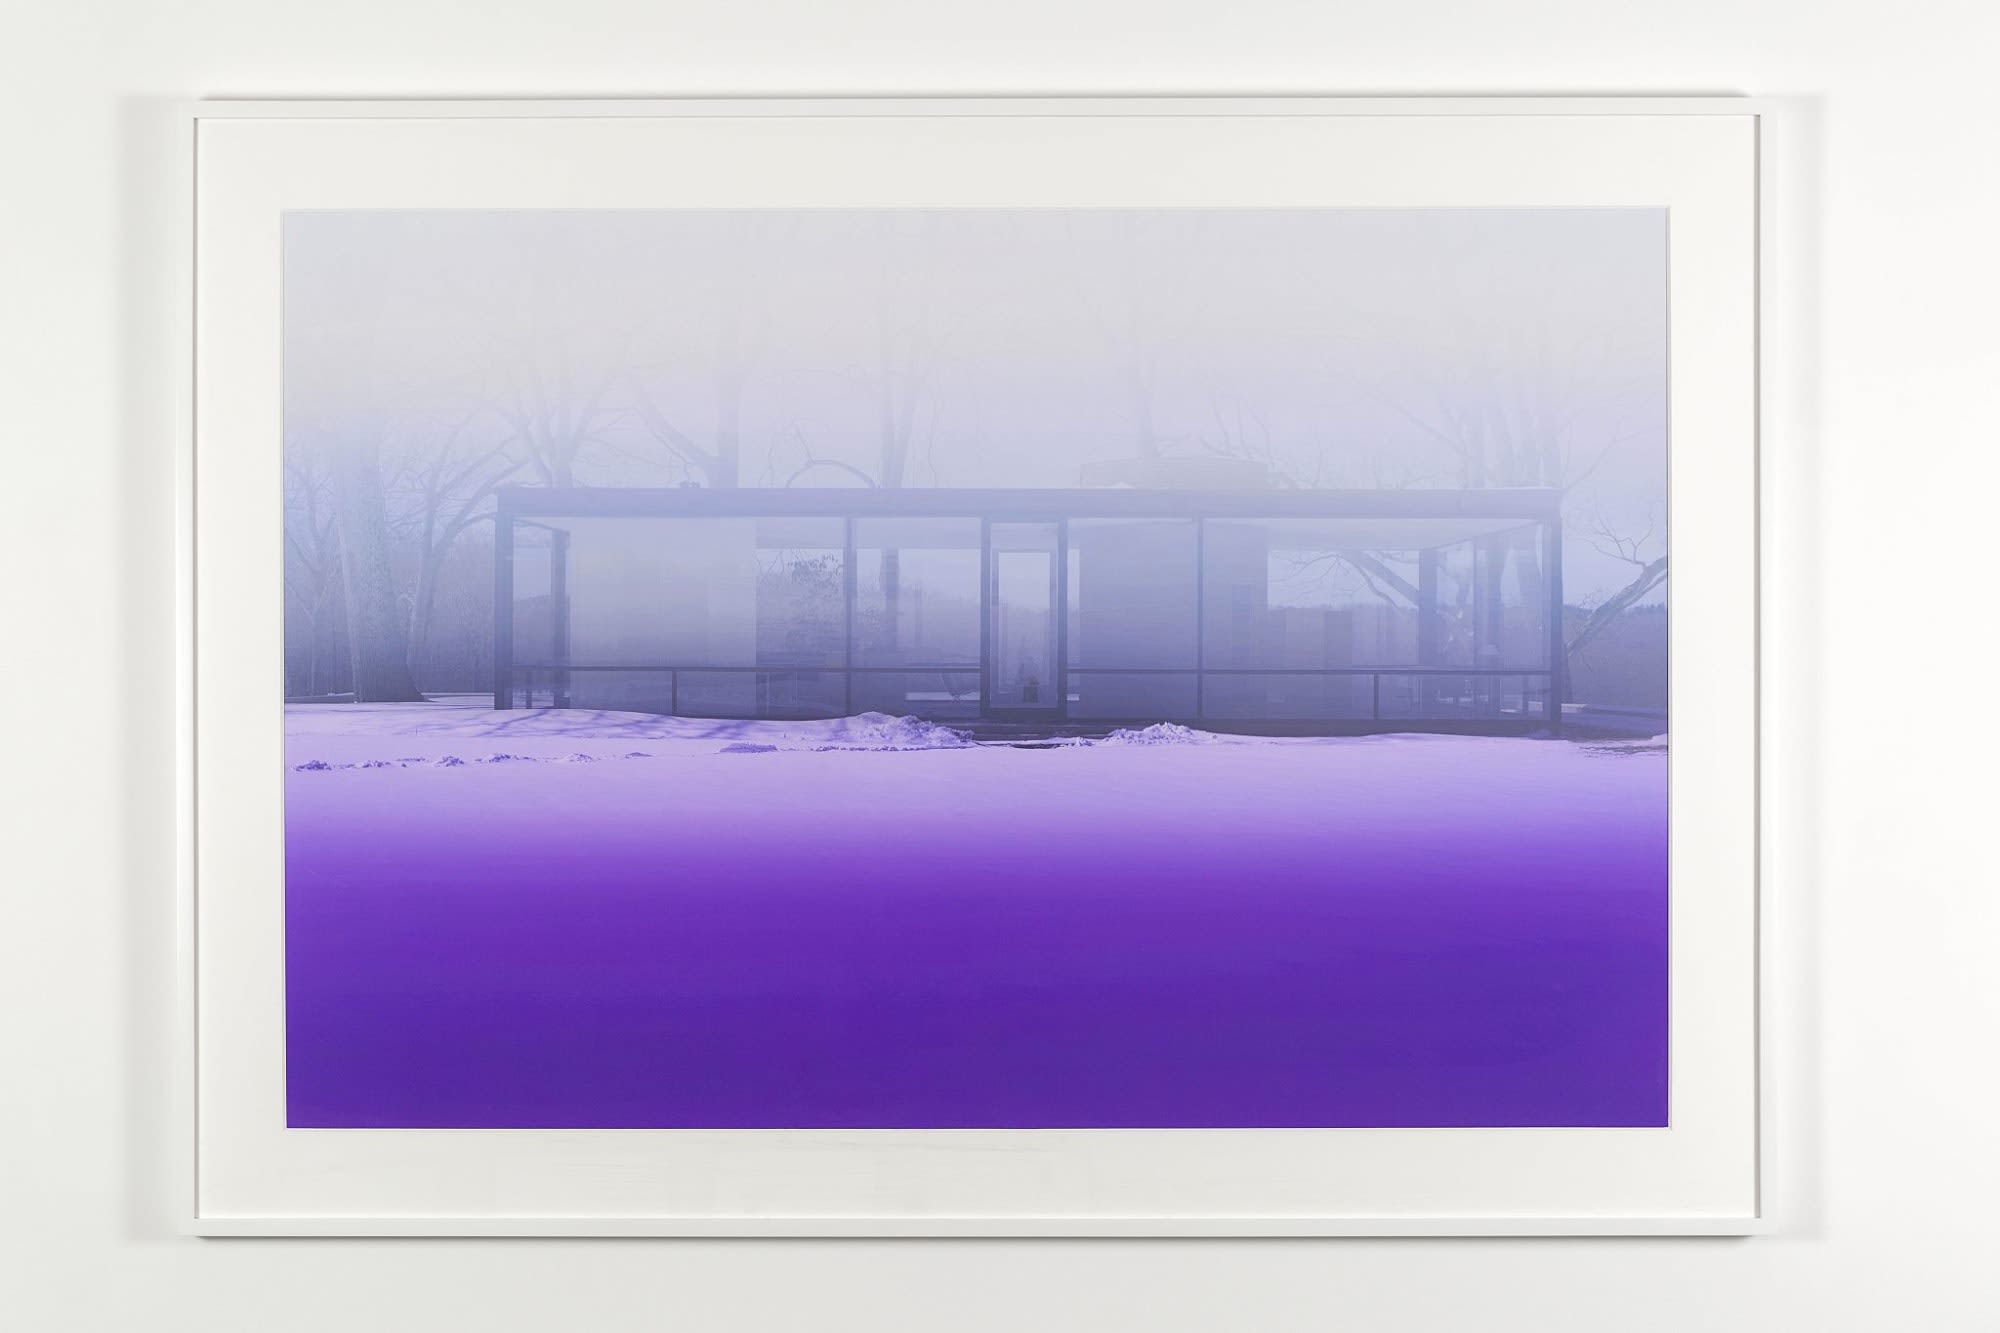 Monochromatic purple photograph of a rectangular glass building in a winter landscape on an overcast day.